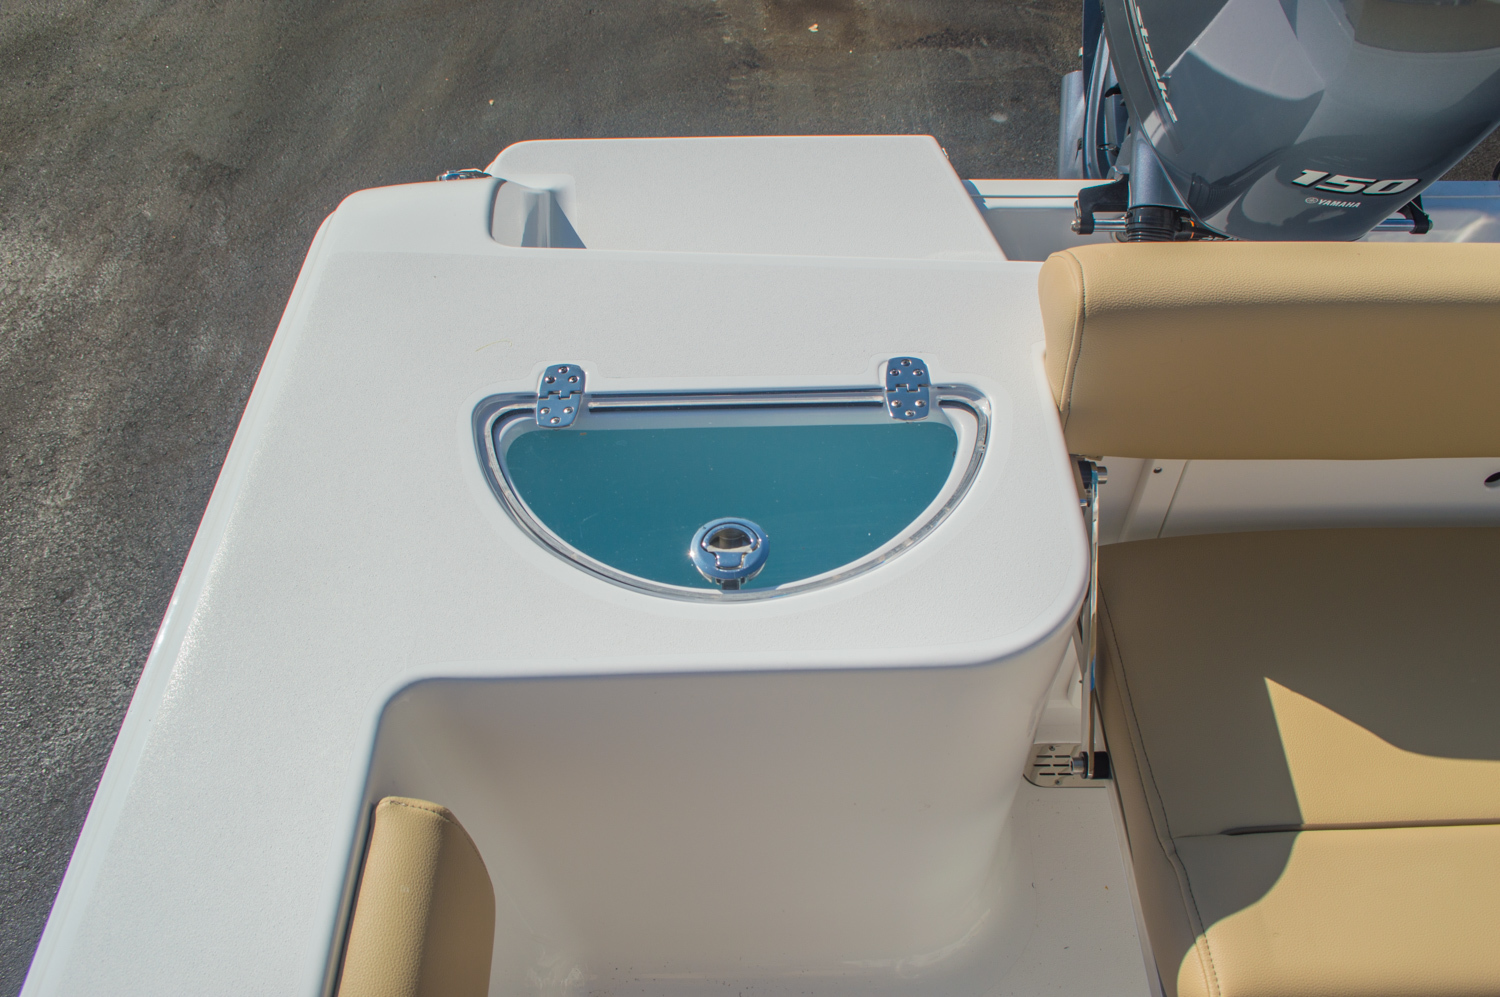 Thumbnail 24 for New 2016 Sportsman Open 212 Center Console boat for sale in West Palm Beach, FL